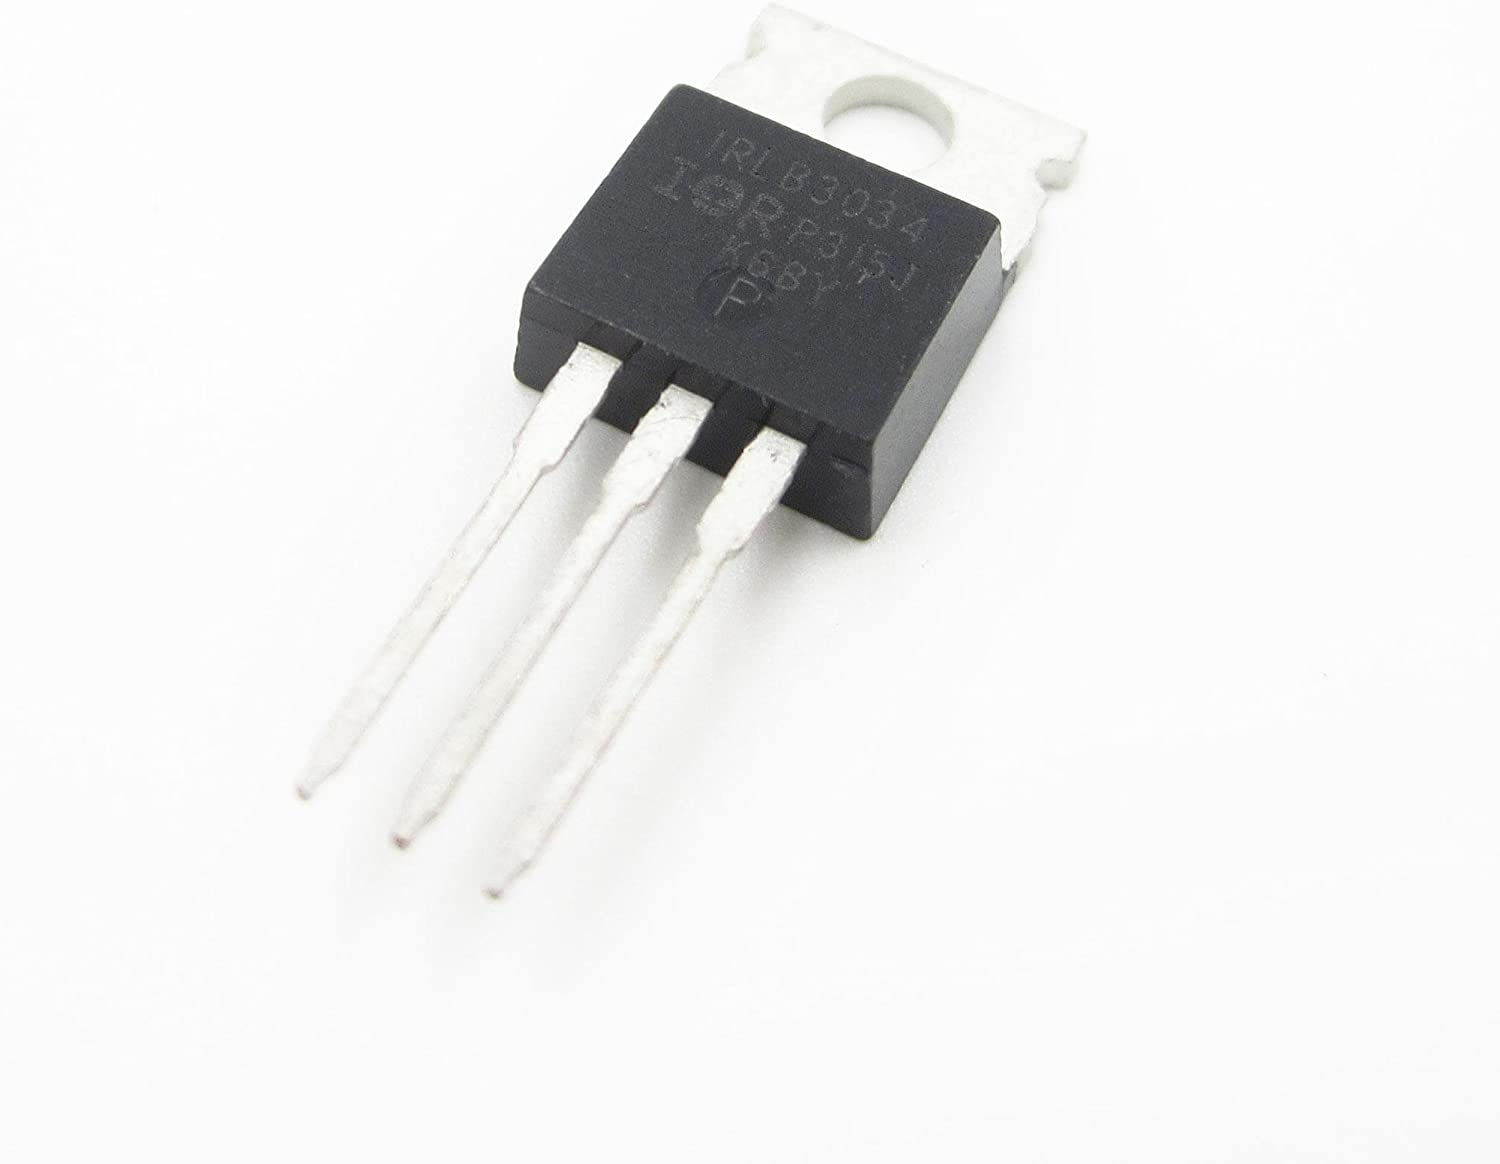 1pcs IRLB3034PBF IRLB3034 HEXFET Power MOSFET TO-220